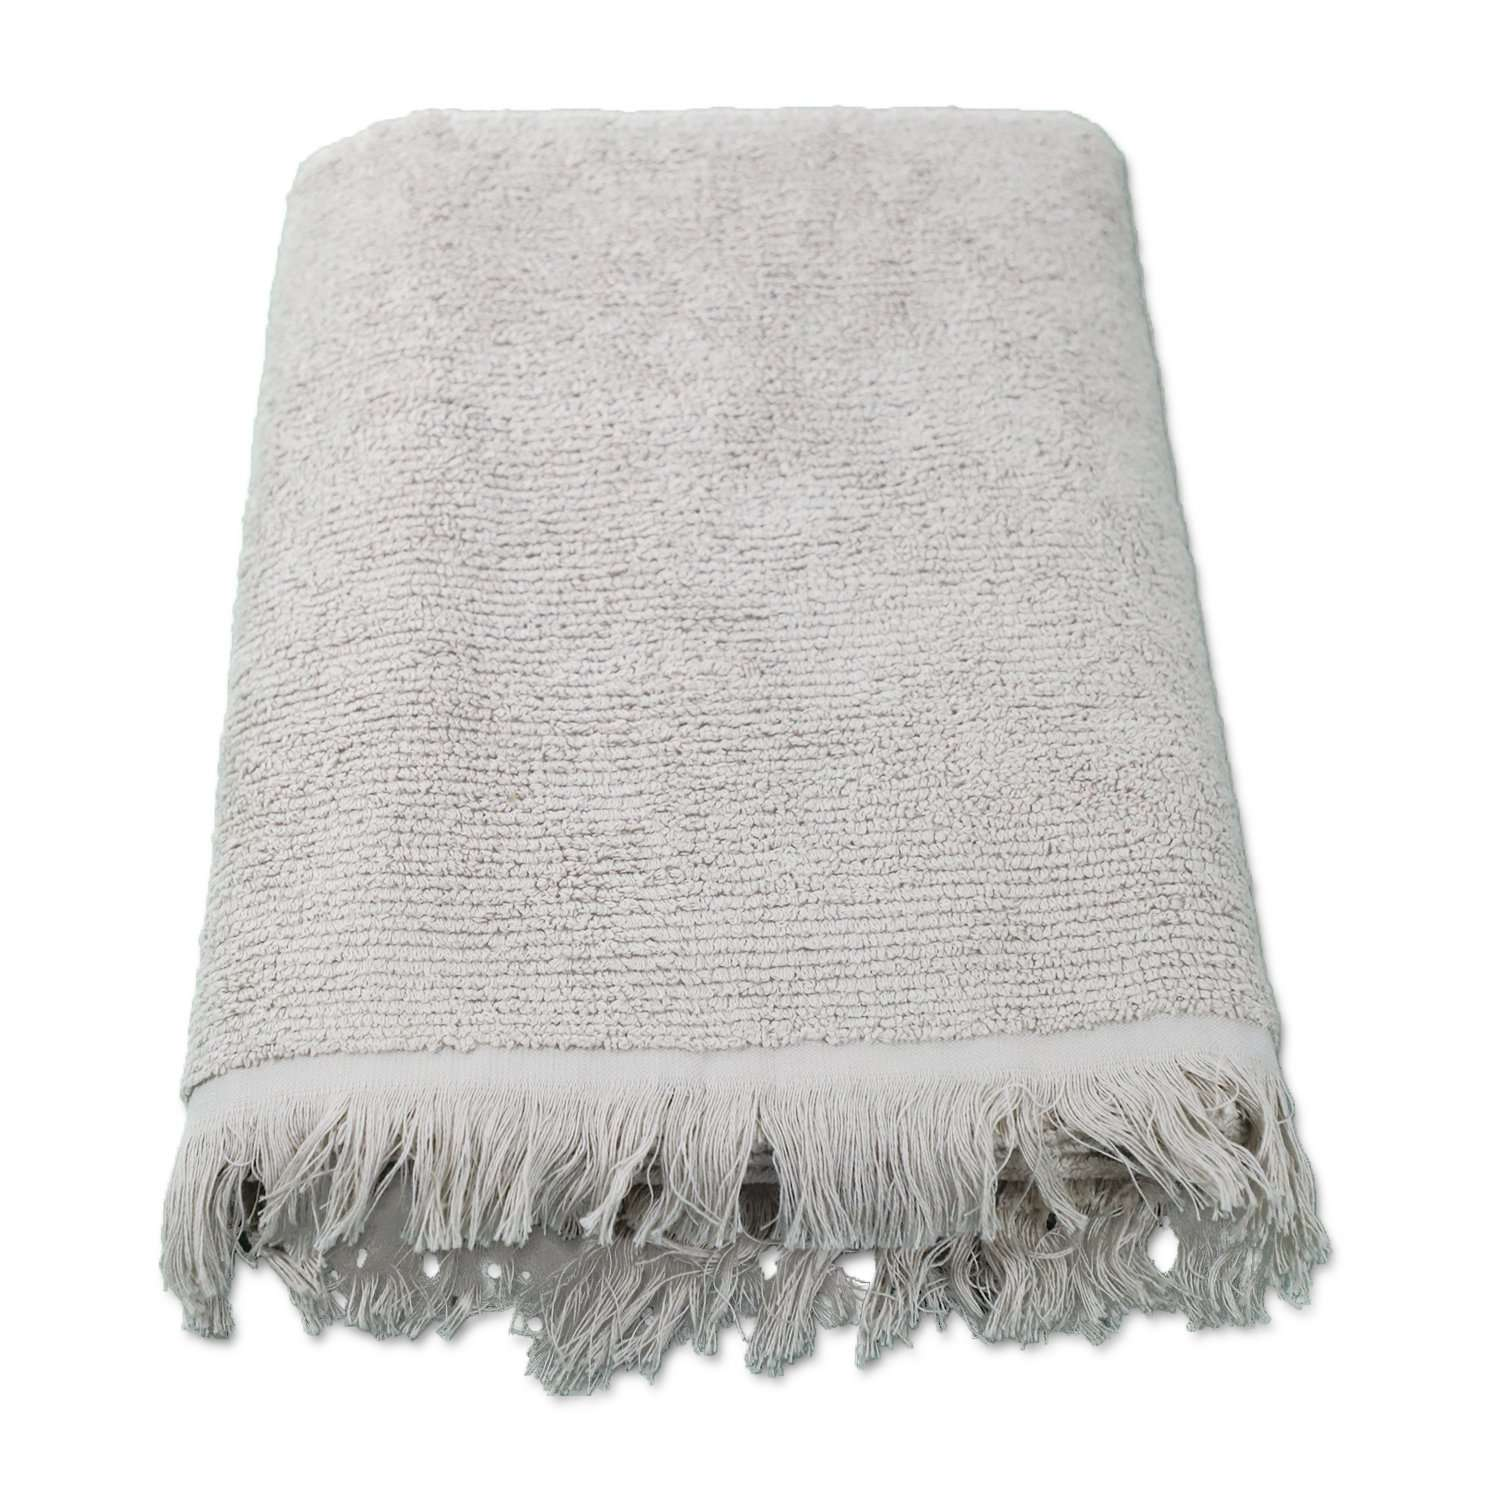 Radford Egyptian Cotton Bath Luxury Towels - Luxor Linens